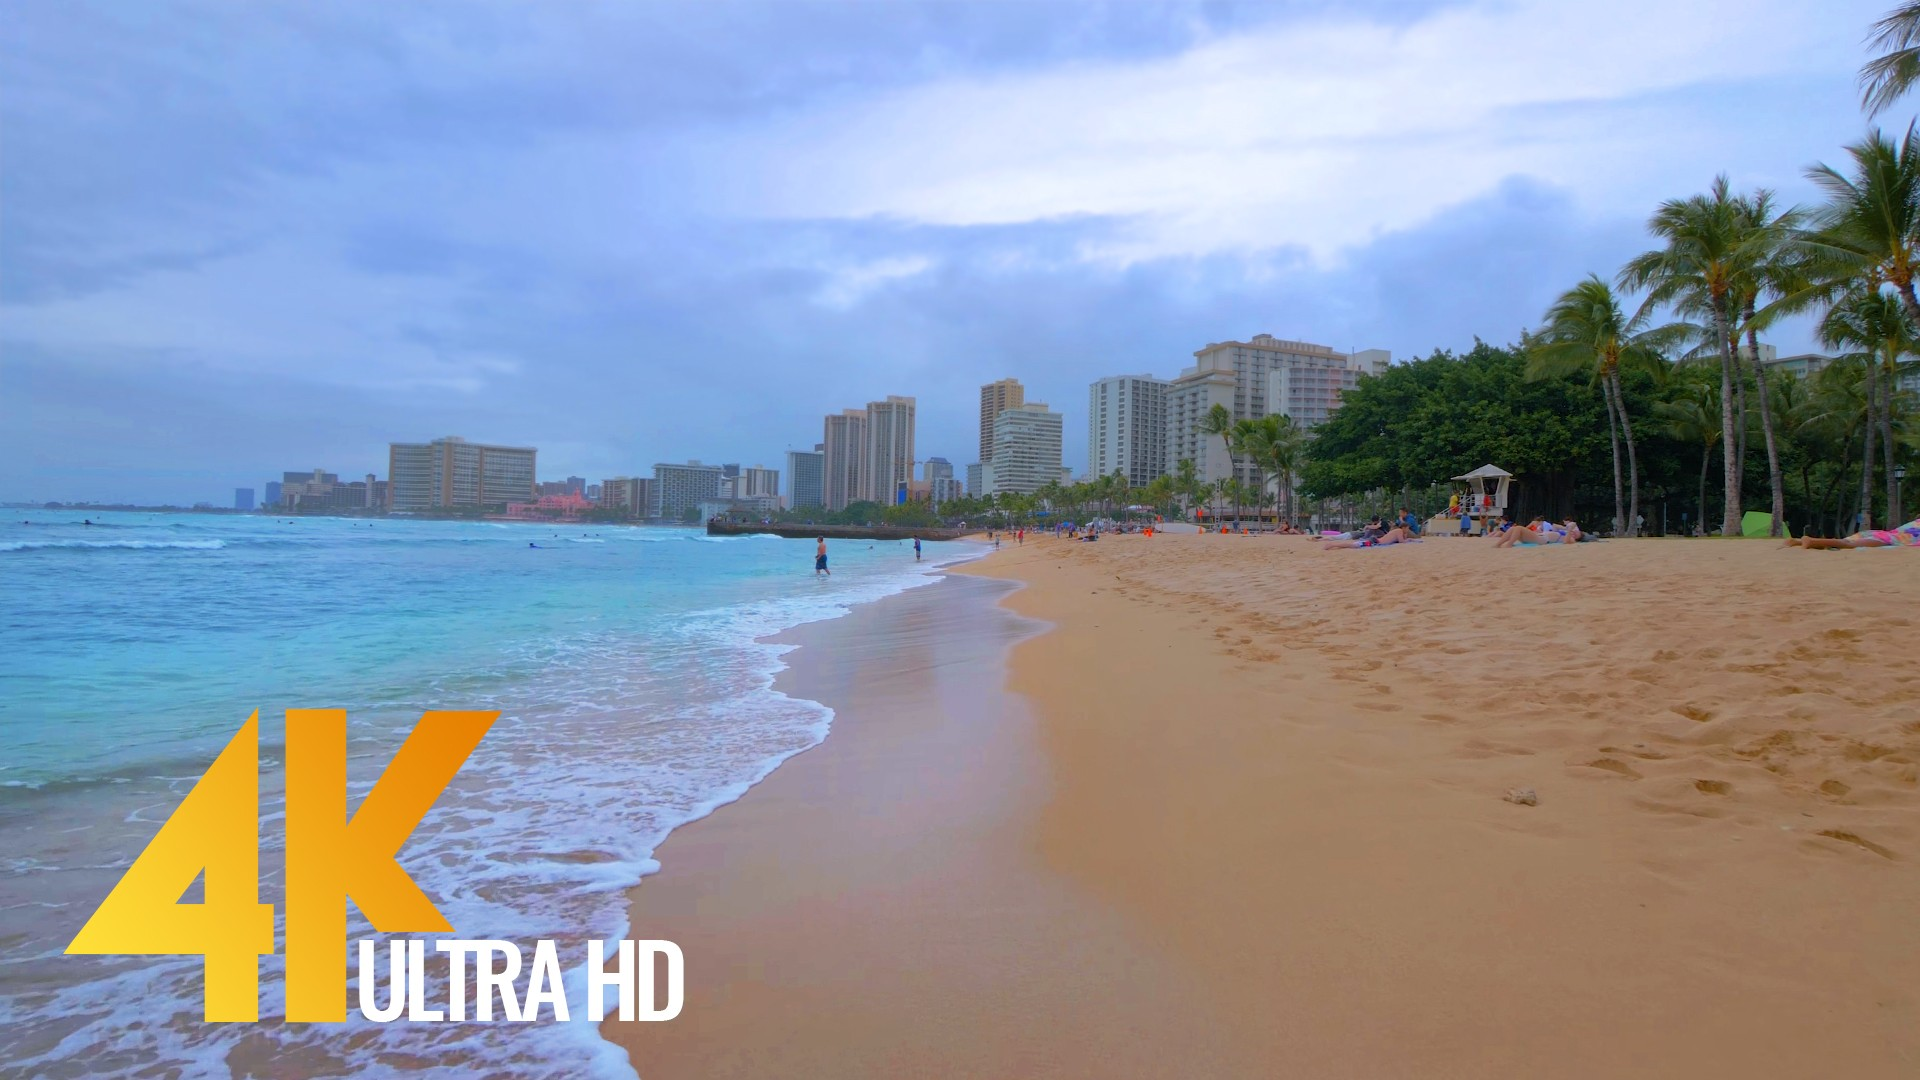 VIRTUAL WALK ALONG WAIKIKI BEACH, OAHU, HAWAII